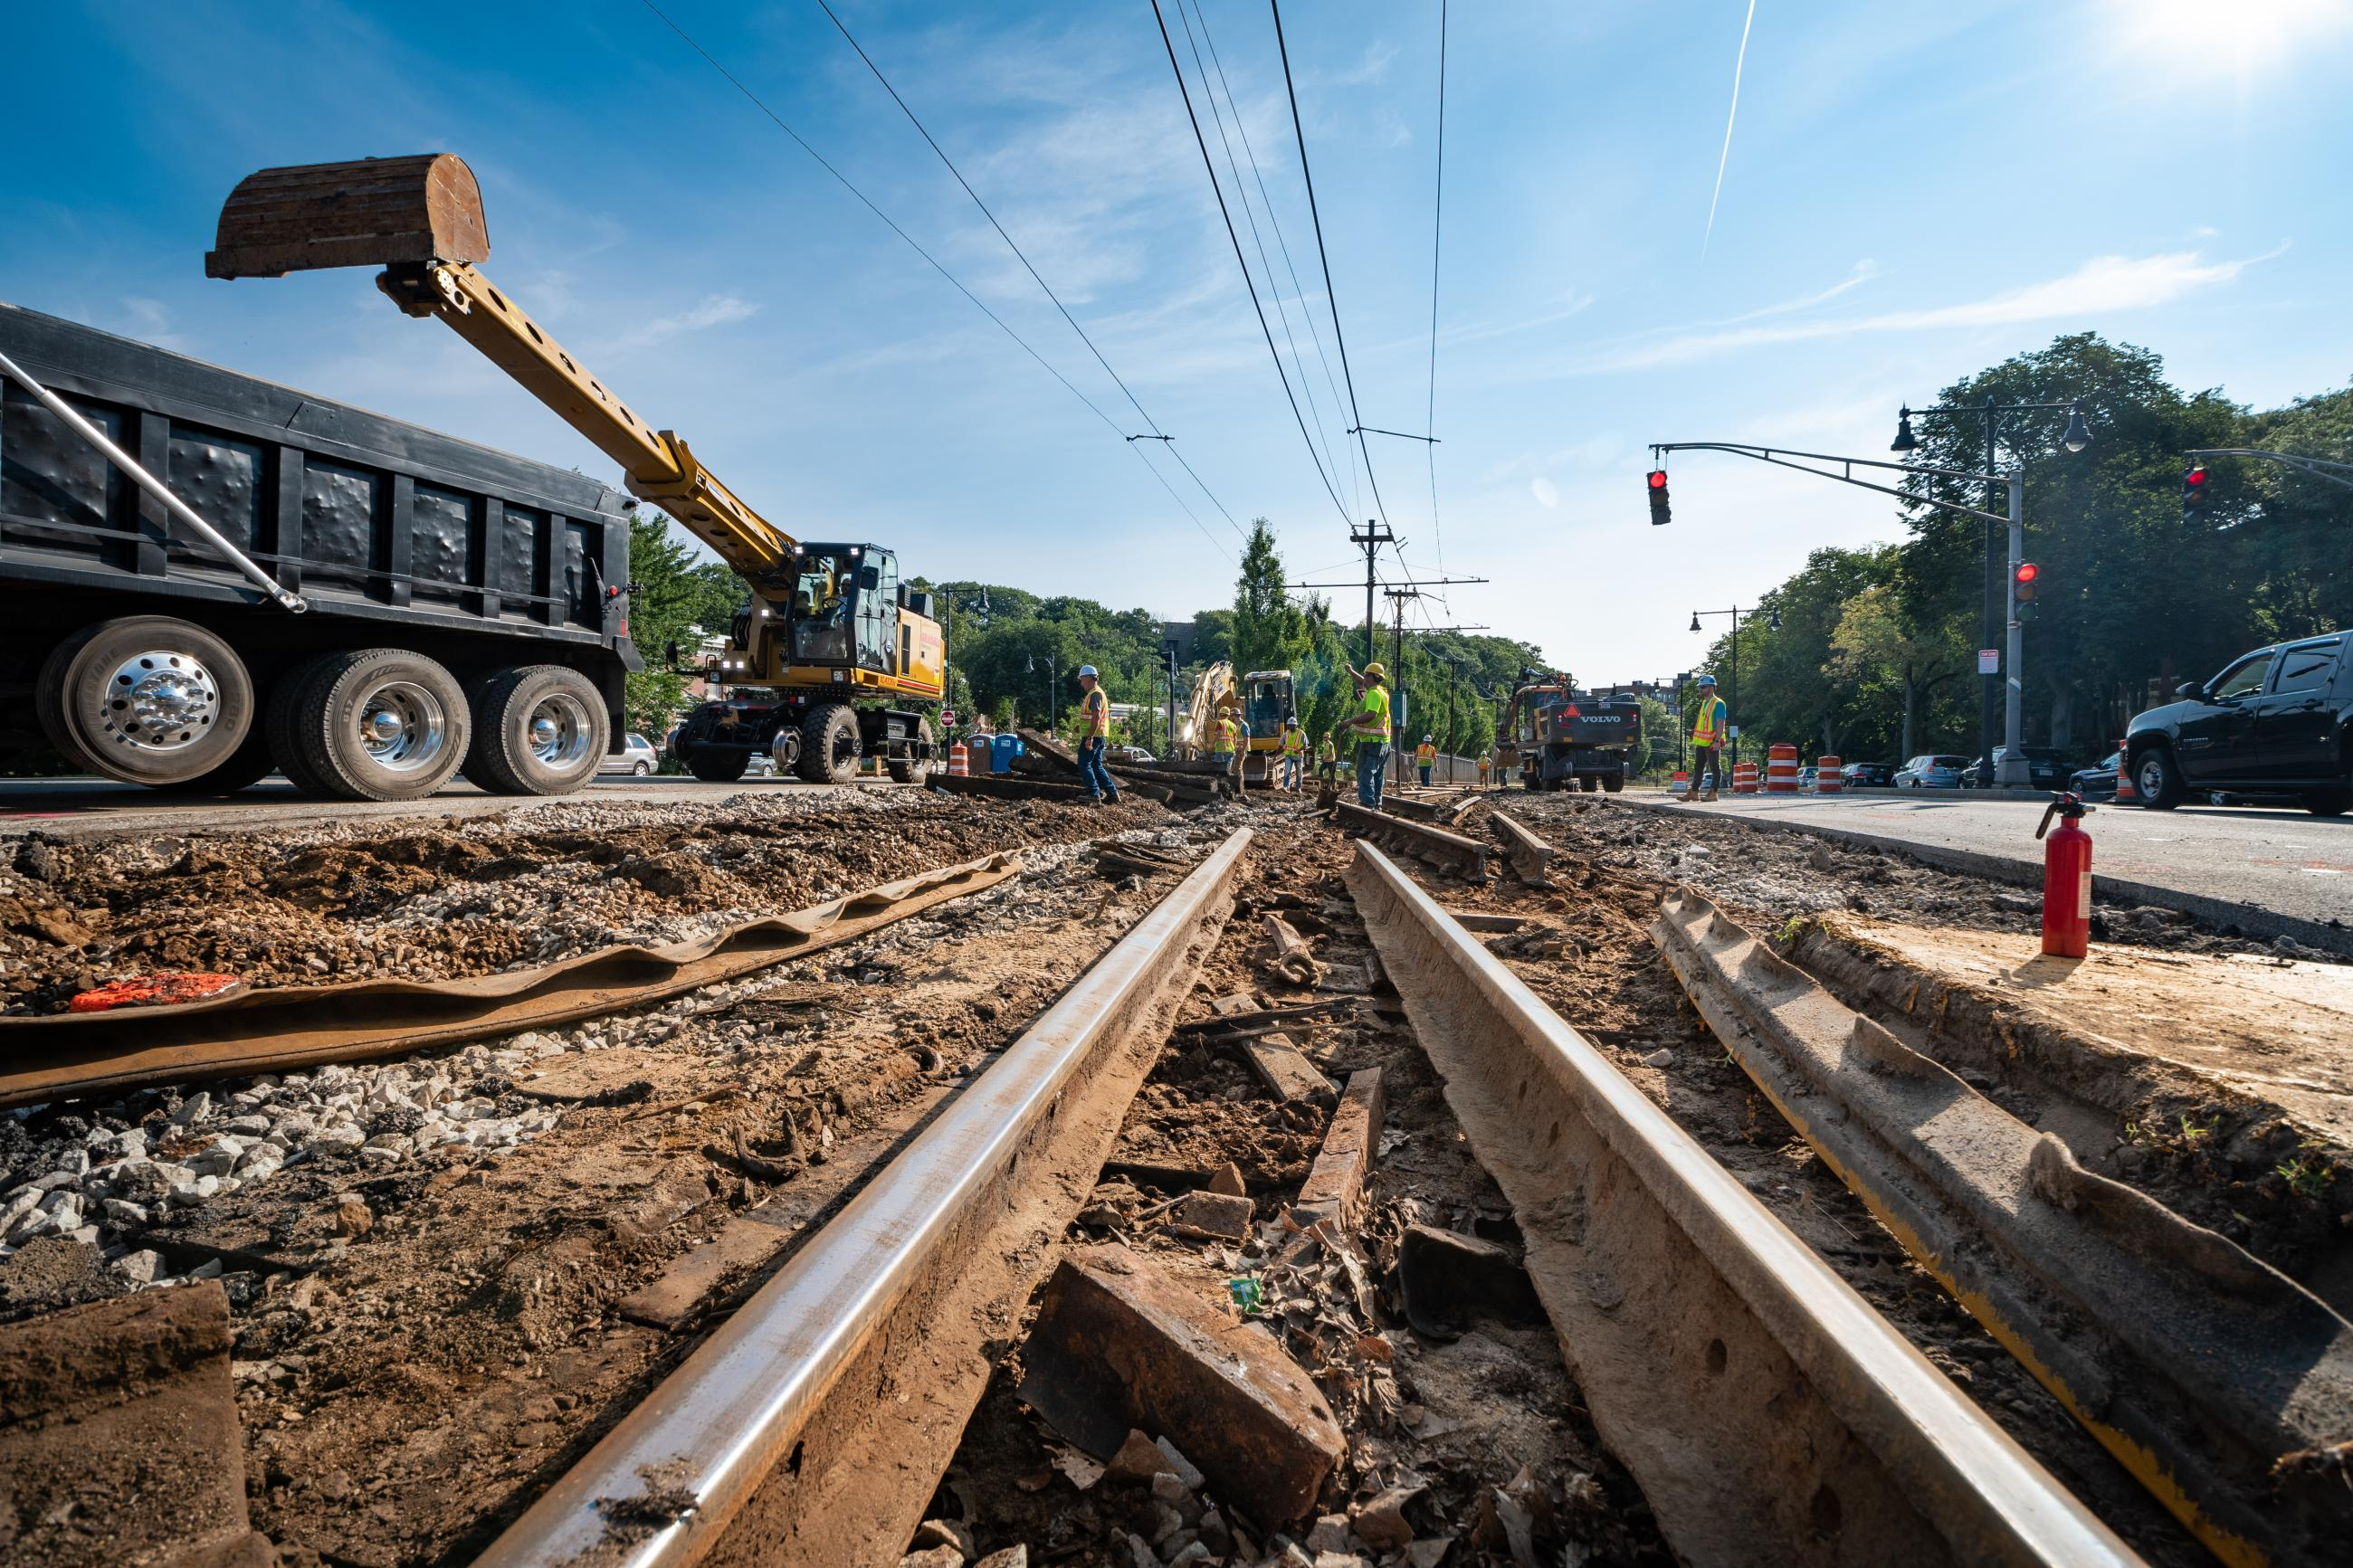 Track work on the Green Line B Branch during summer 2018.